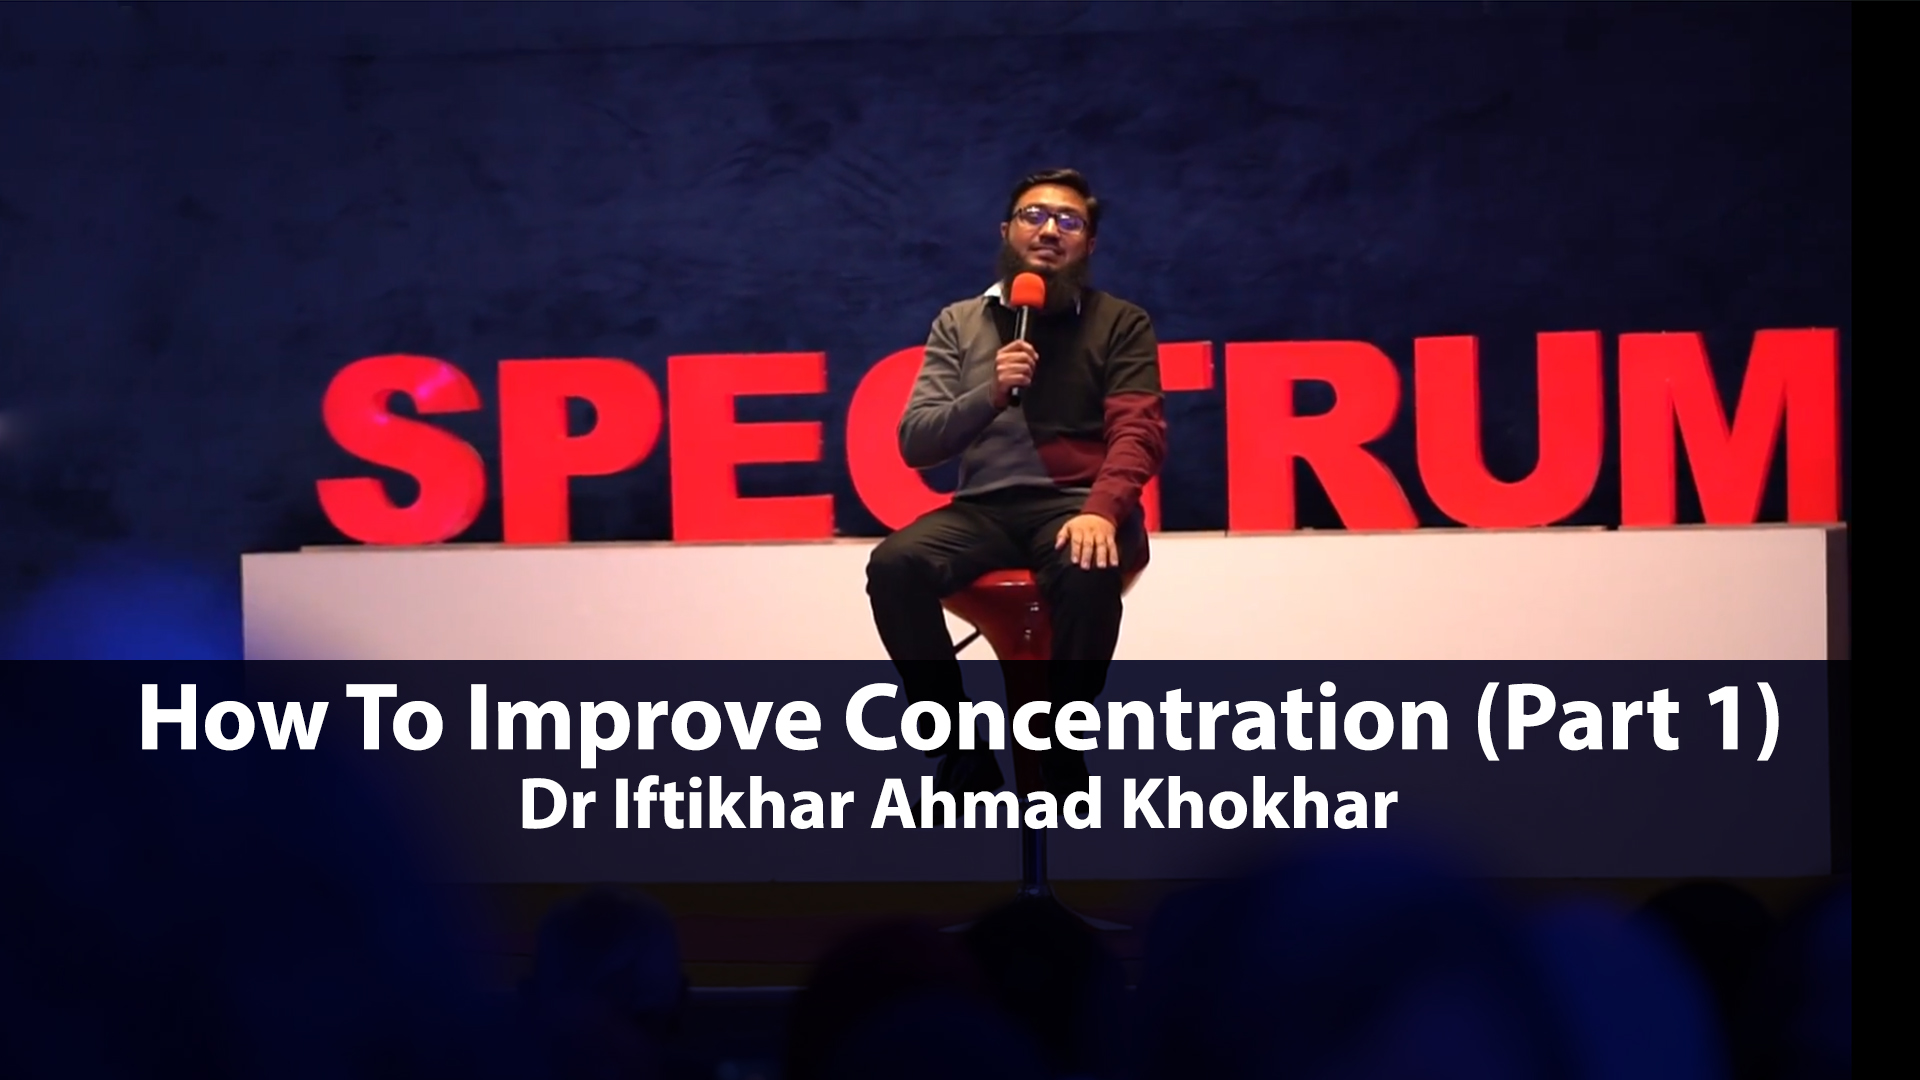 How To Improve Concentration (Part 1)